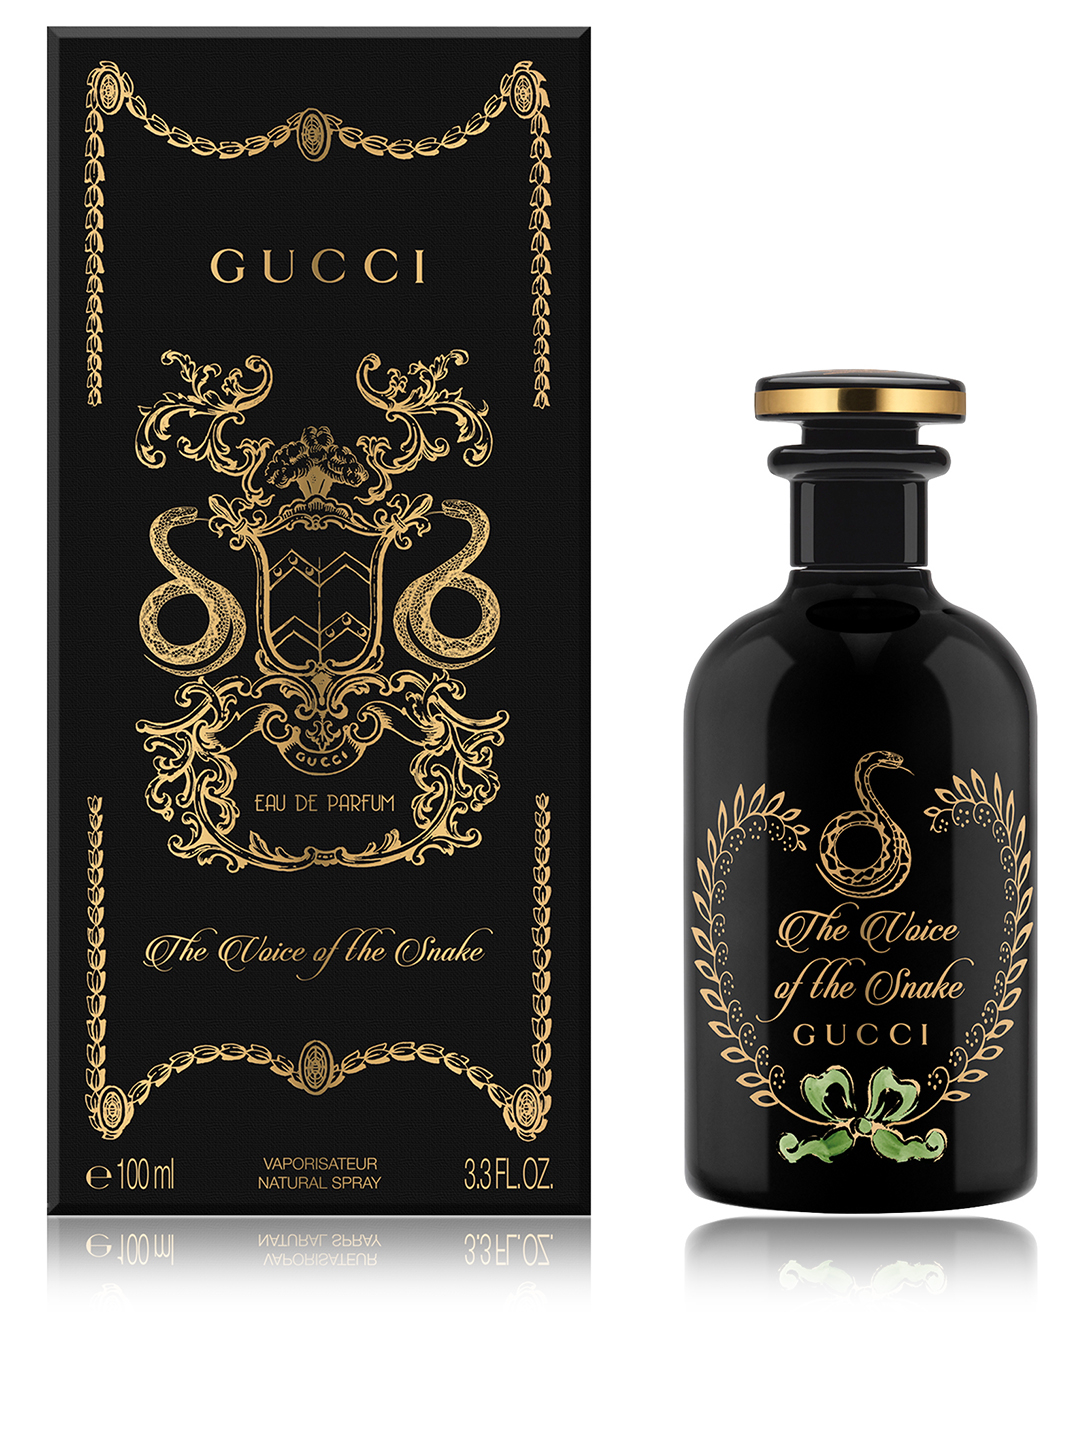 GUCCI The Alchemist's Garden The Voice of the Snake Eau de Parfum Collections